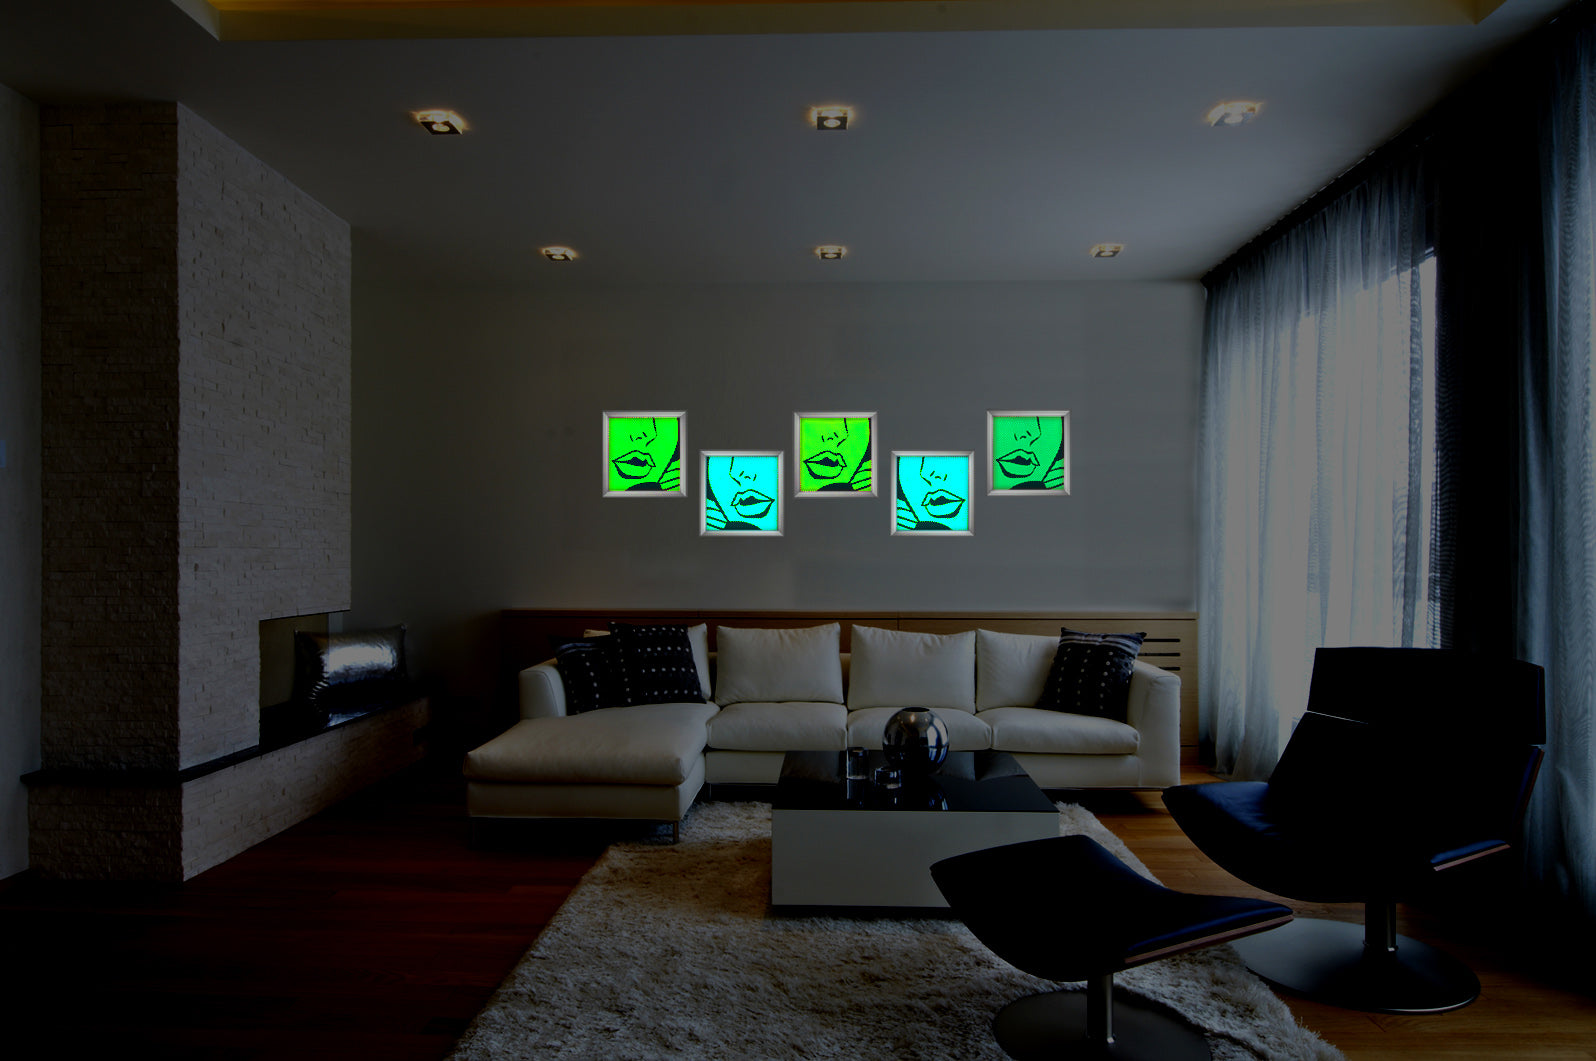 Led Art work, Art lights. led art home decor, abstract home decor, modern wall art led light , rgb led, wifi control art